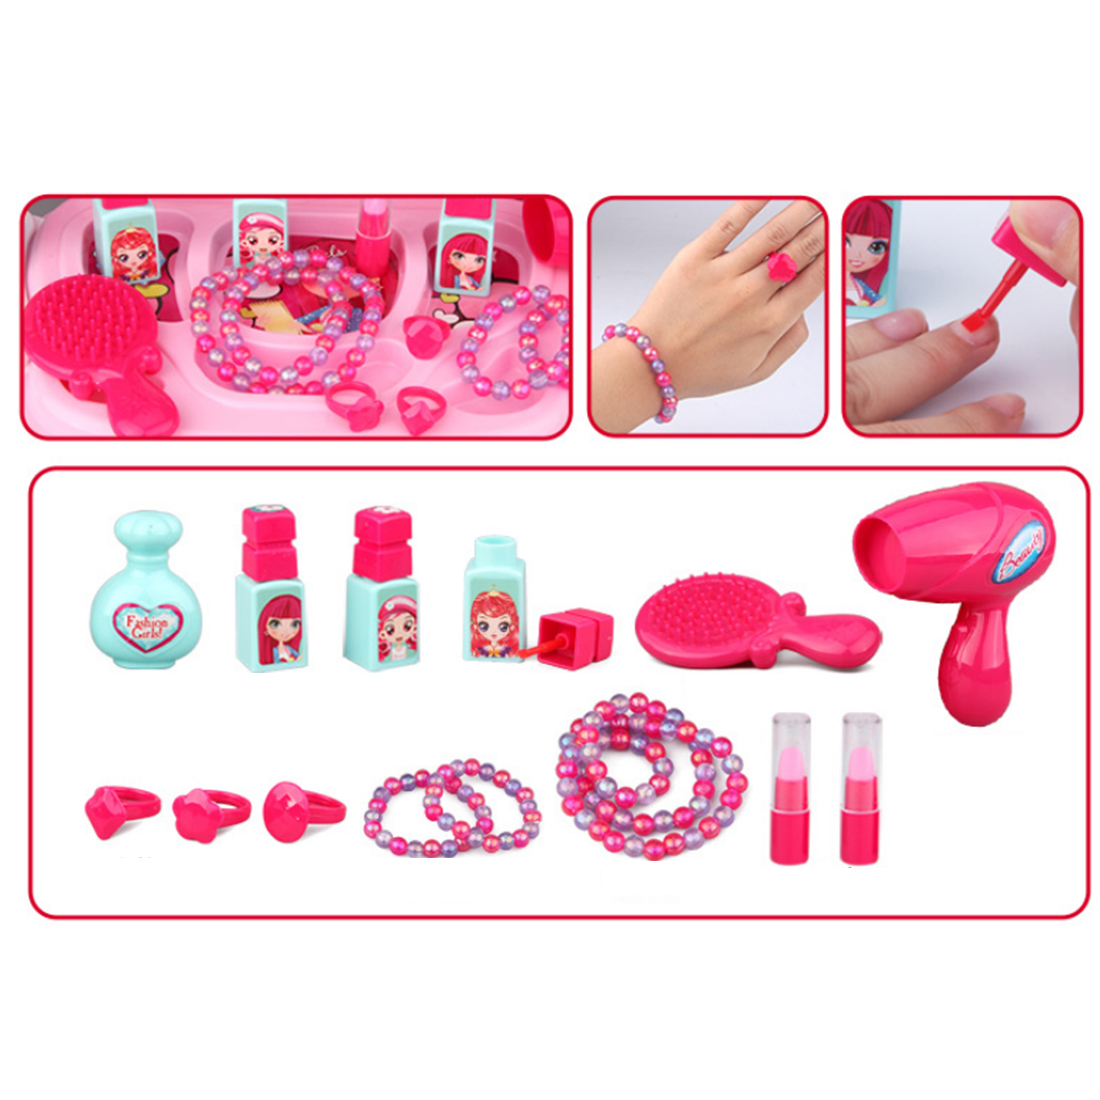 Children Makeup Set Pretend Play Cosmetic Toy Simulation Dress and Make up Travel Case Toys Girl Birthday Gift Hot Sale Pink in Furniture Toys from Toys Hobbies